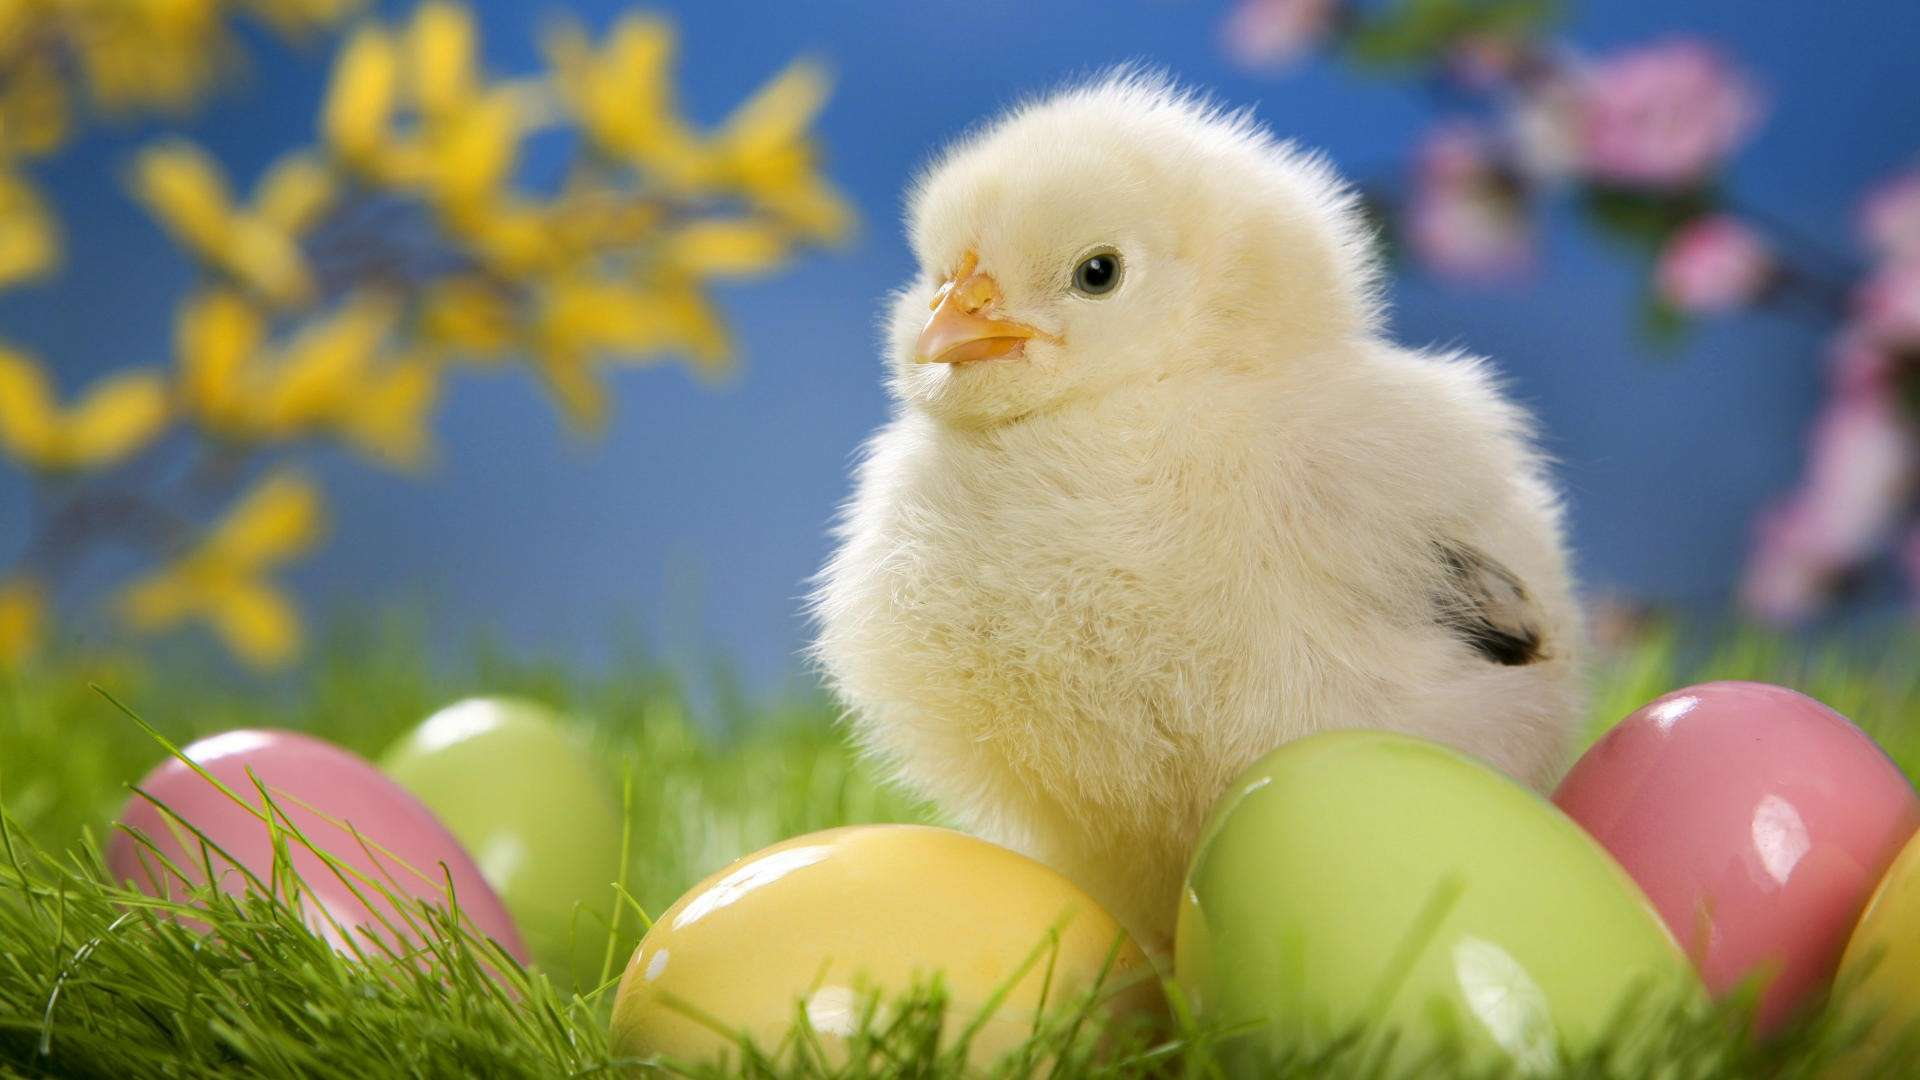 Cute Easter Chick with Eggs HD Wallpaper 187 FullHDWpp 1920x1080